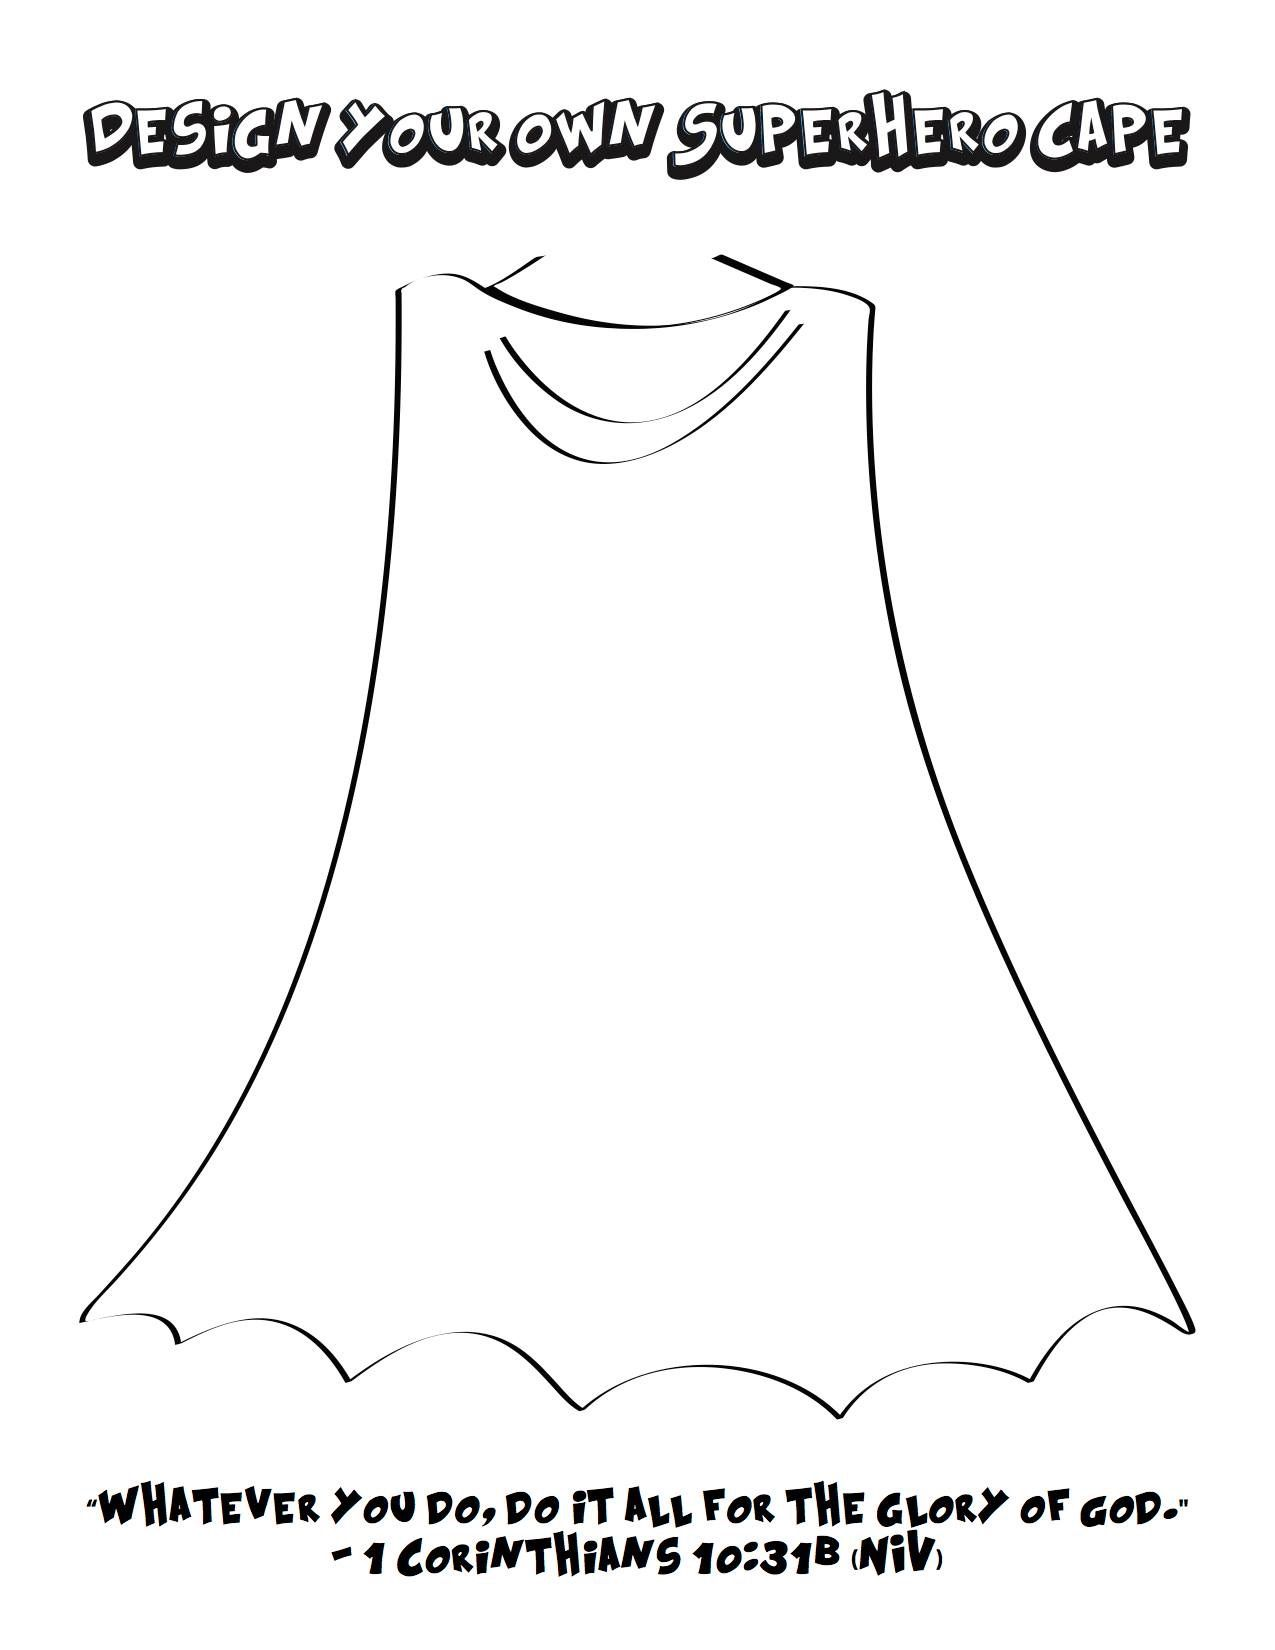 Design Your Own Superhero Cape Design Your Own Superhero Superhero Coloring Pages Superhero Coloring